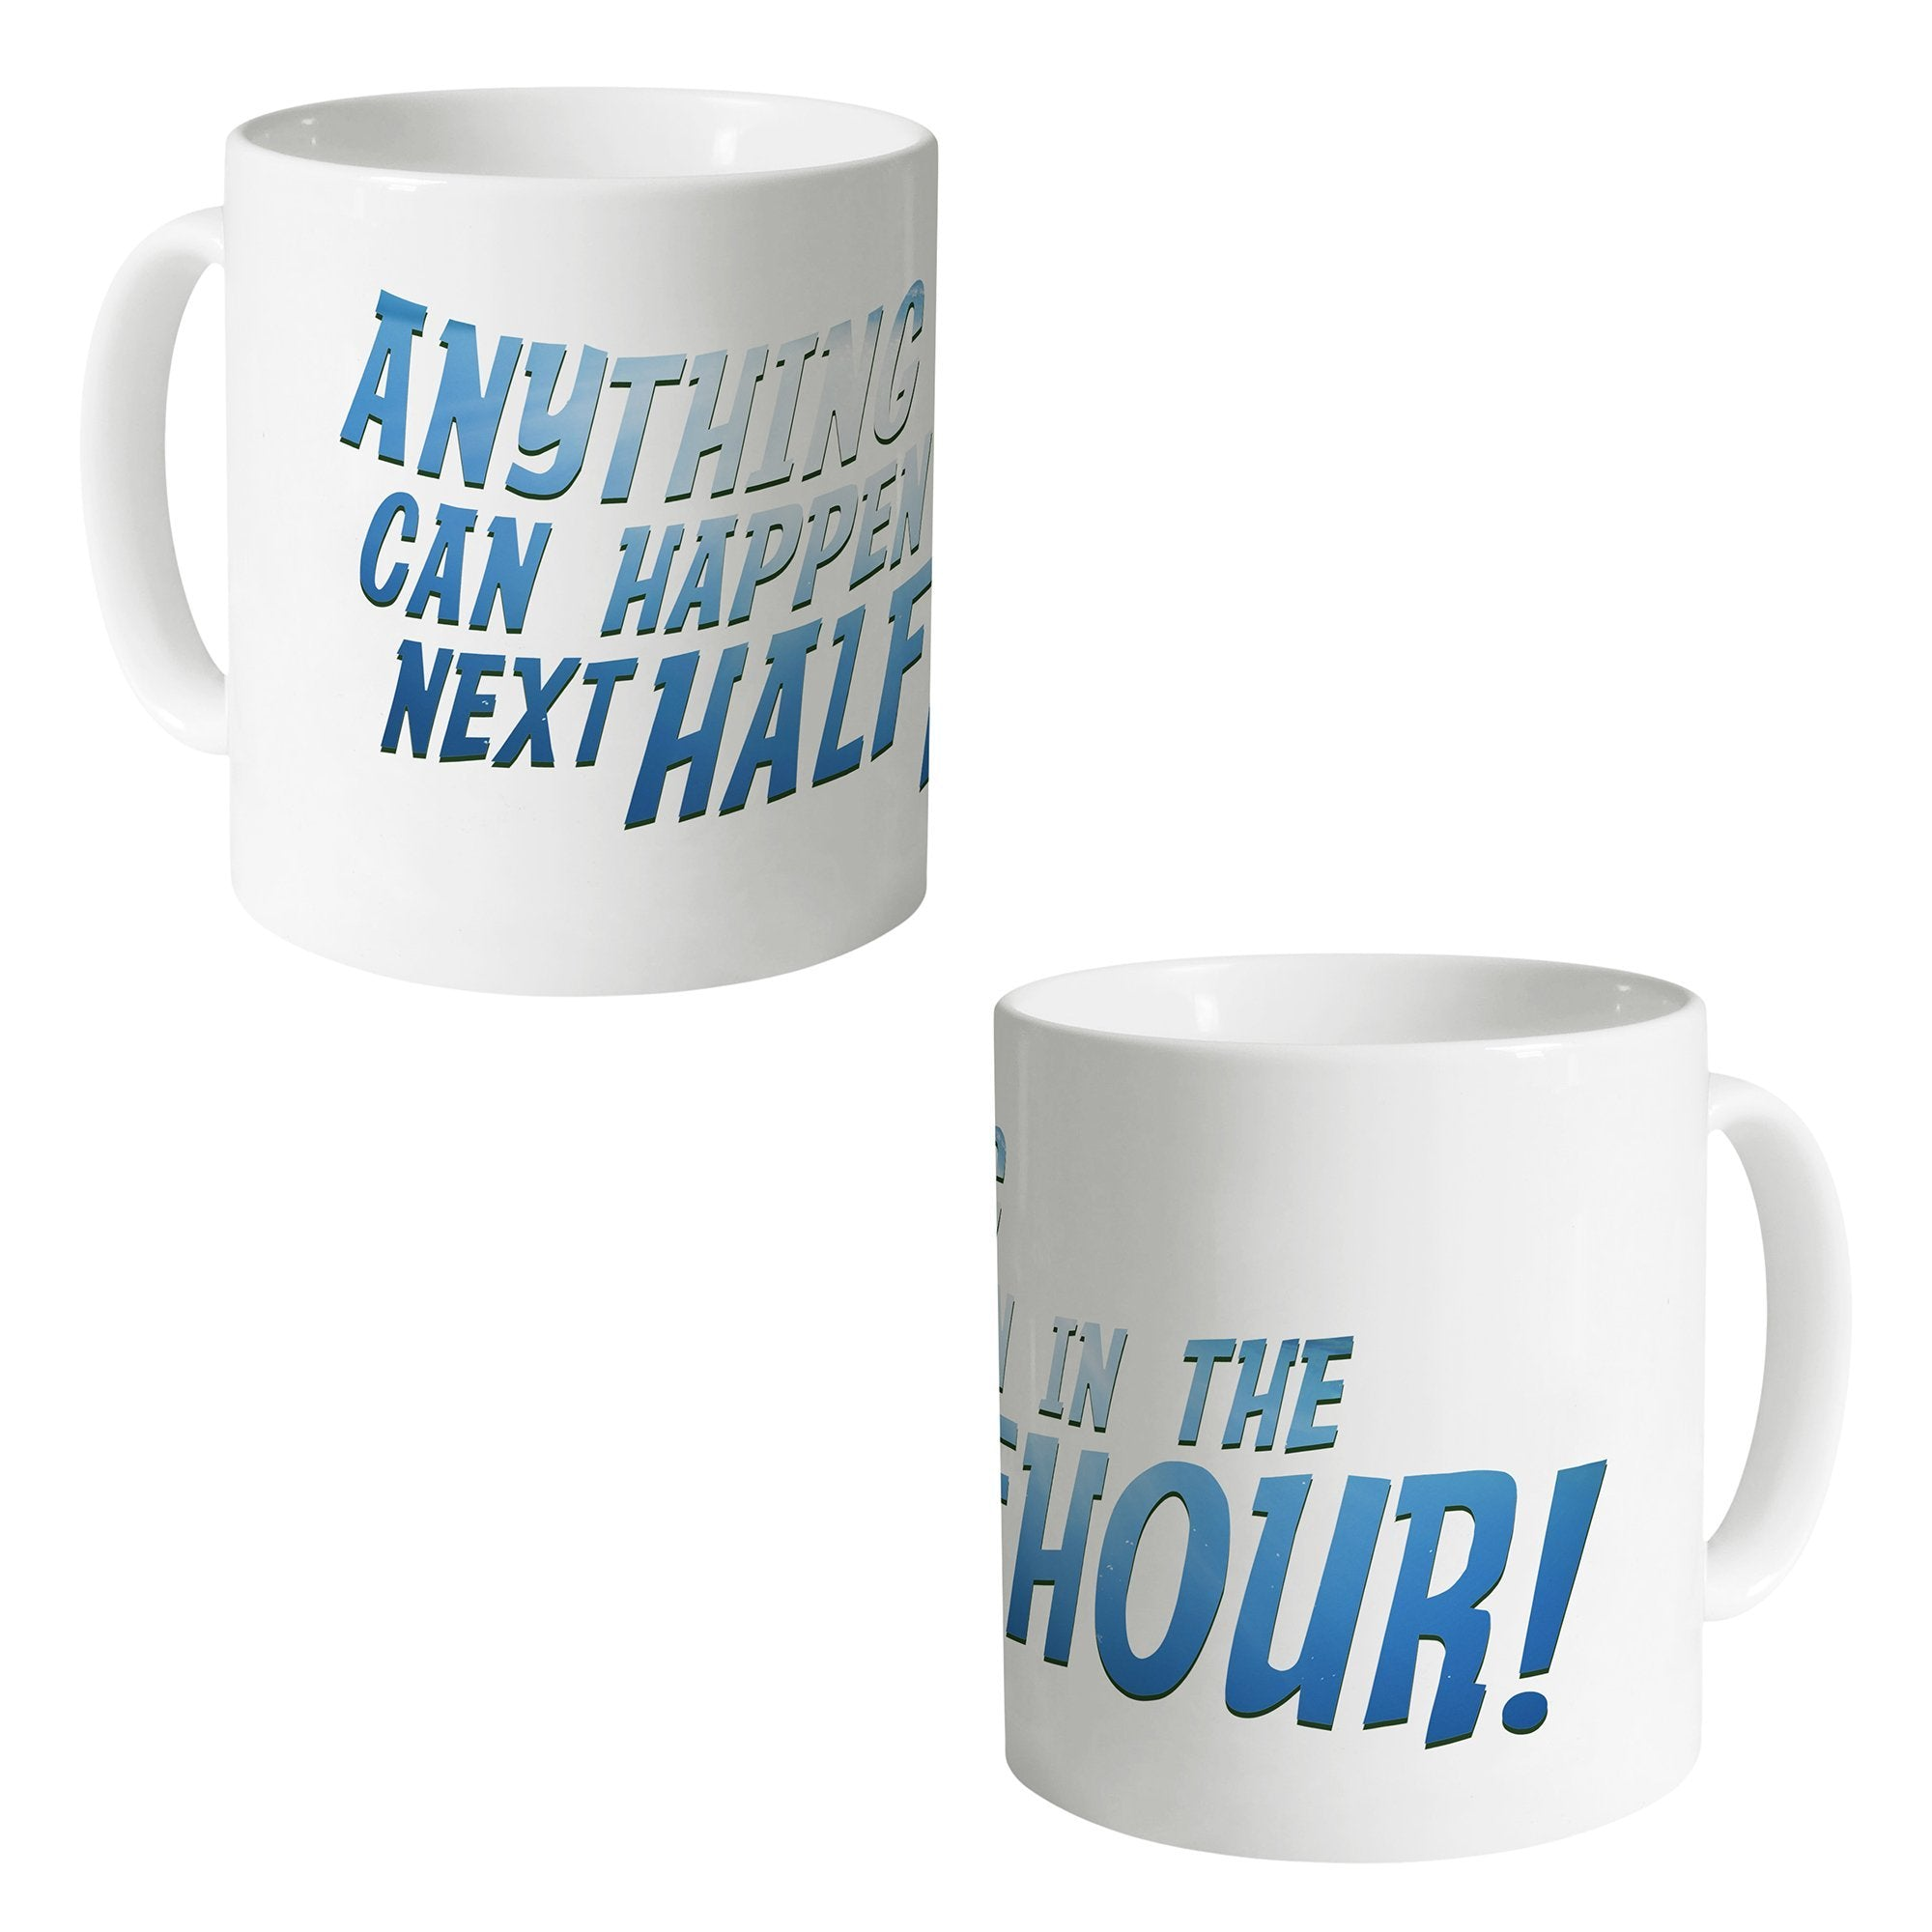 Anything Can Happen In The Next Half Hour! Mug - The Gerry Anderson Store